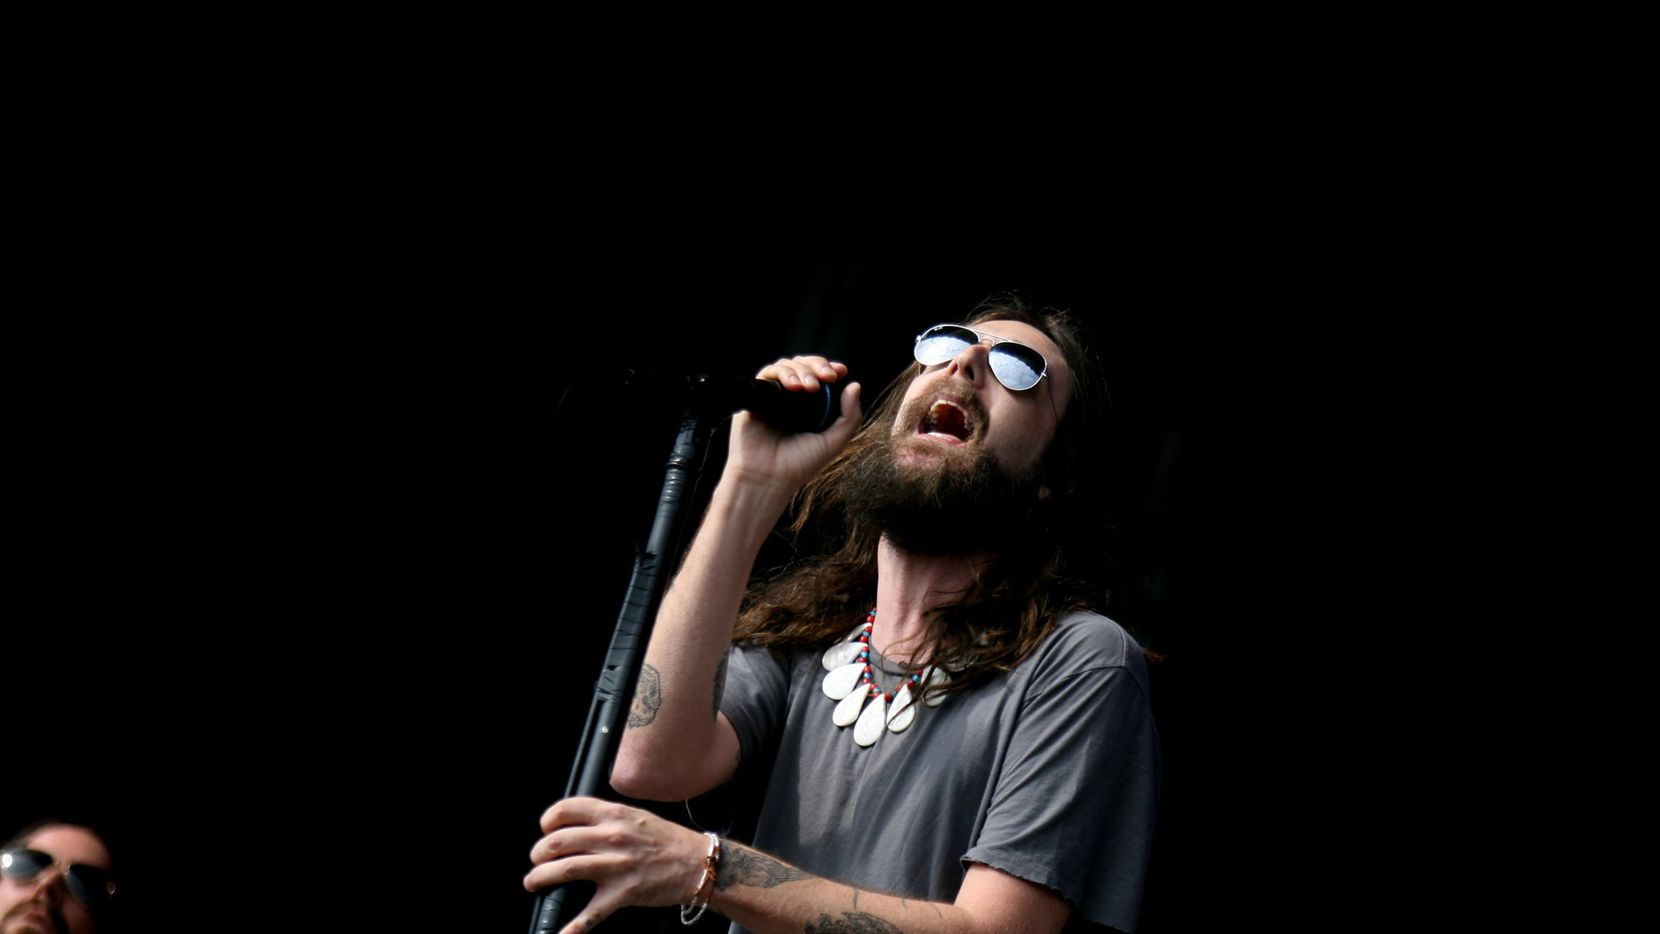 Chris Robinson of the Black Crowes performed during the Rothbury music festival in Rothbury, Mich., on July 4, 2009.